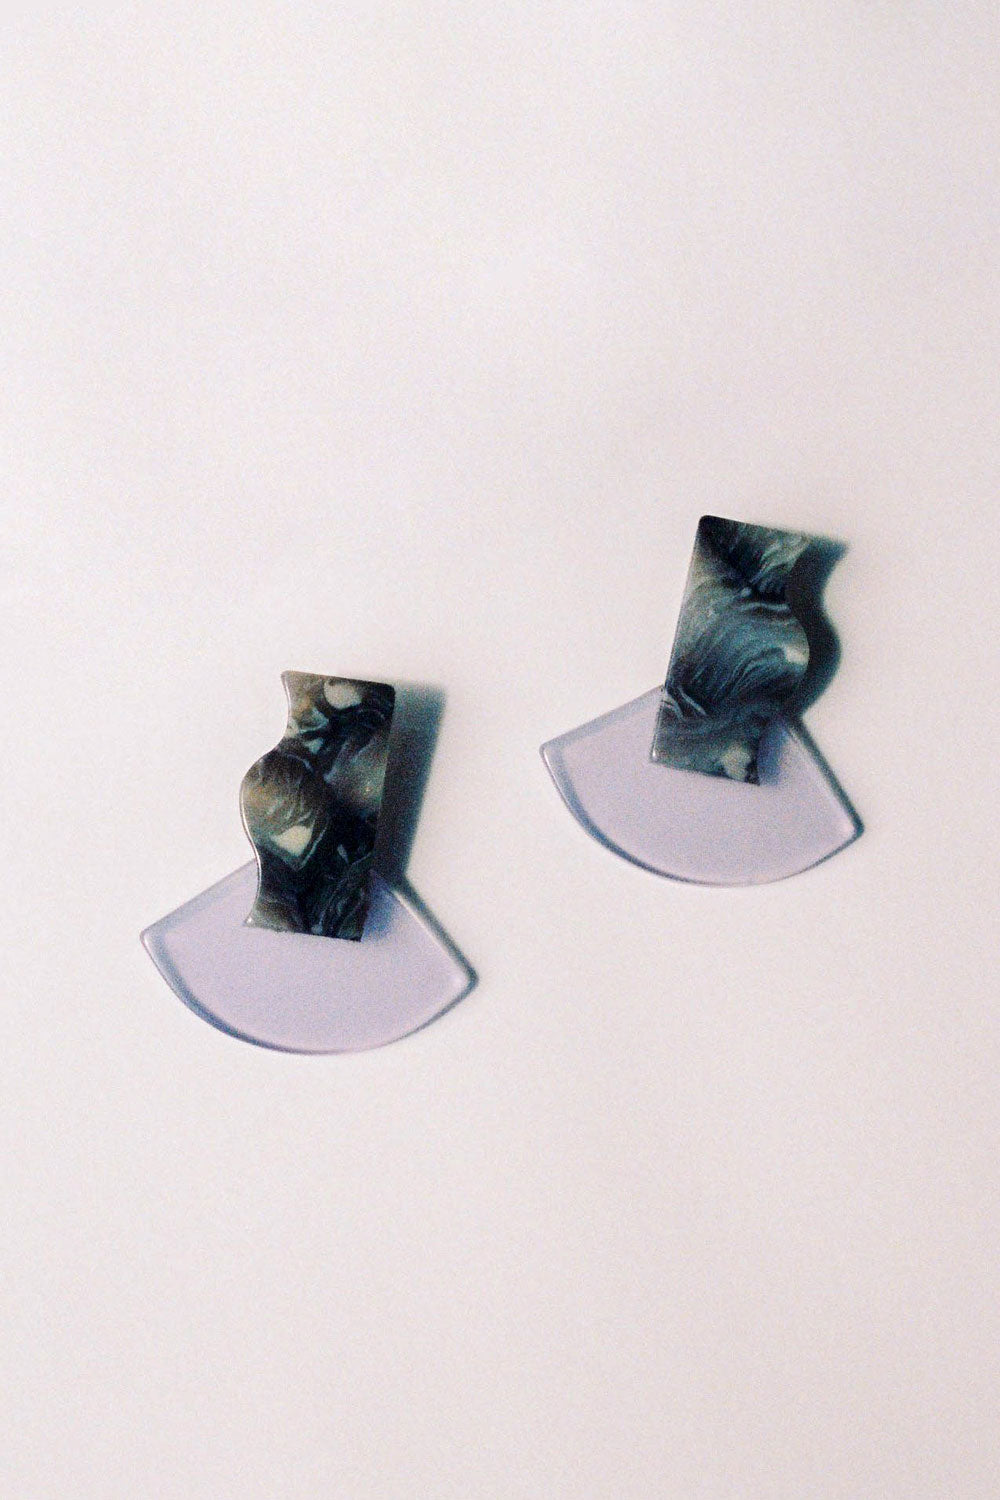 Apres Ski Deva Earrings in Lilac - Vert & Vogue